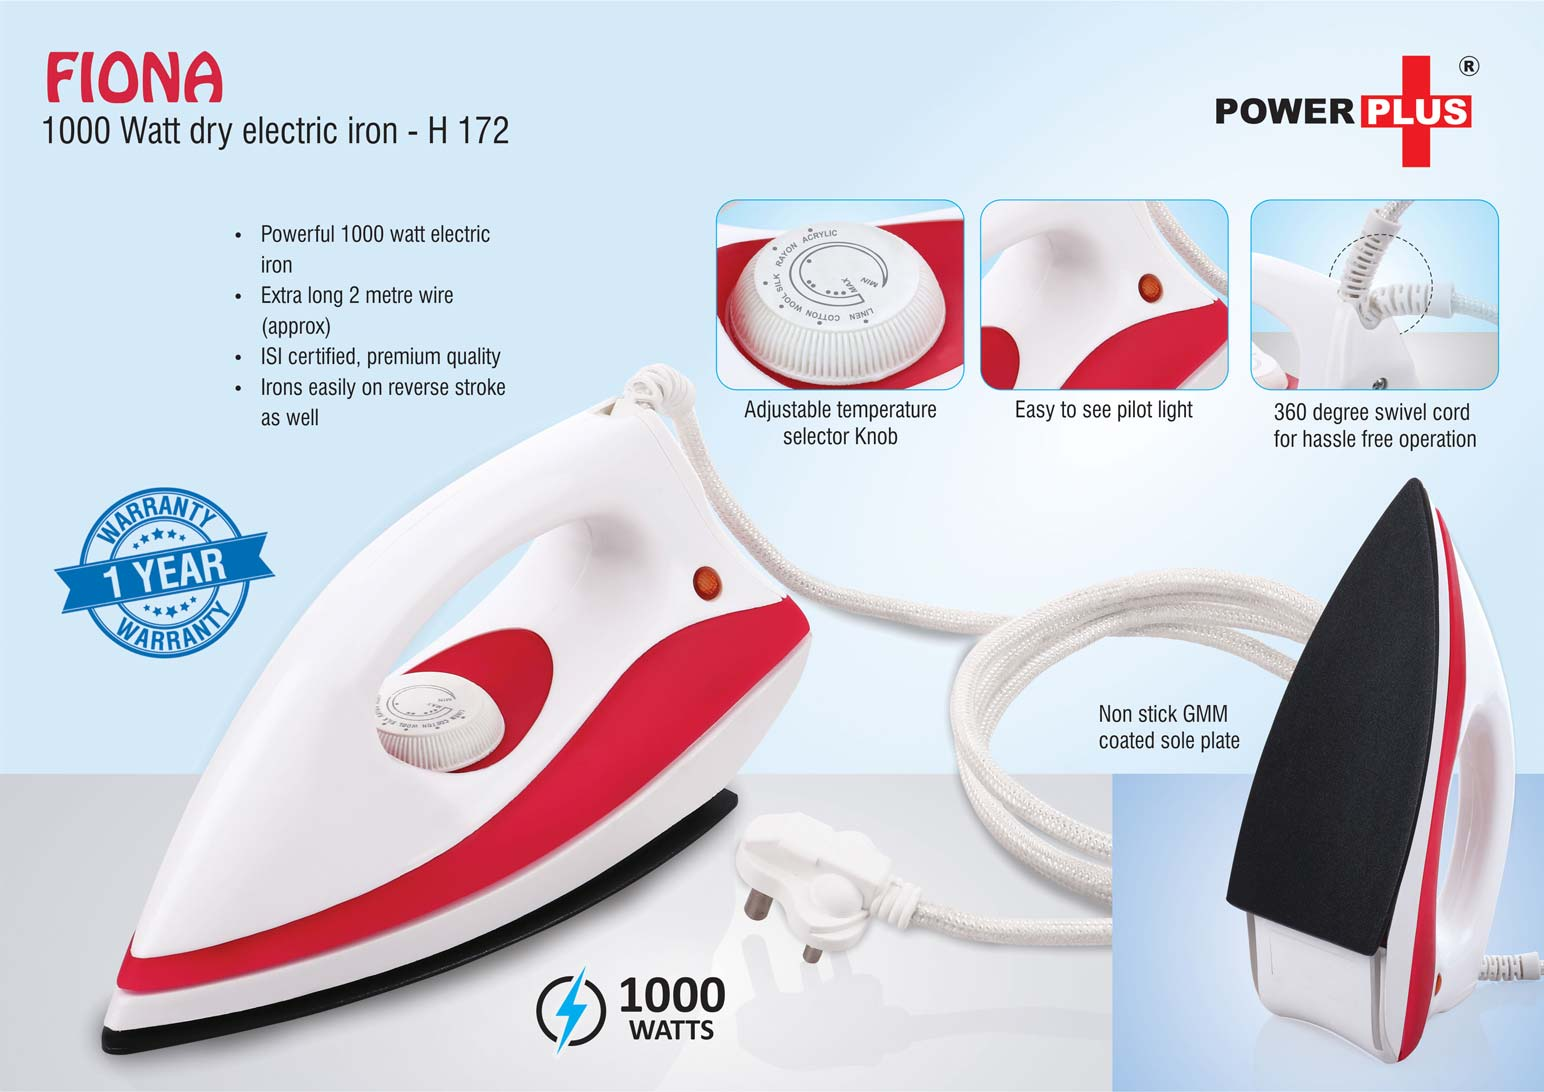 H172 - Fiona: 1000 Watt dry electric iron by Power Plus | 1 year warranty